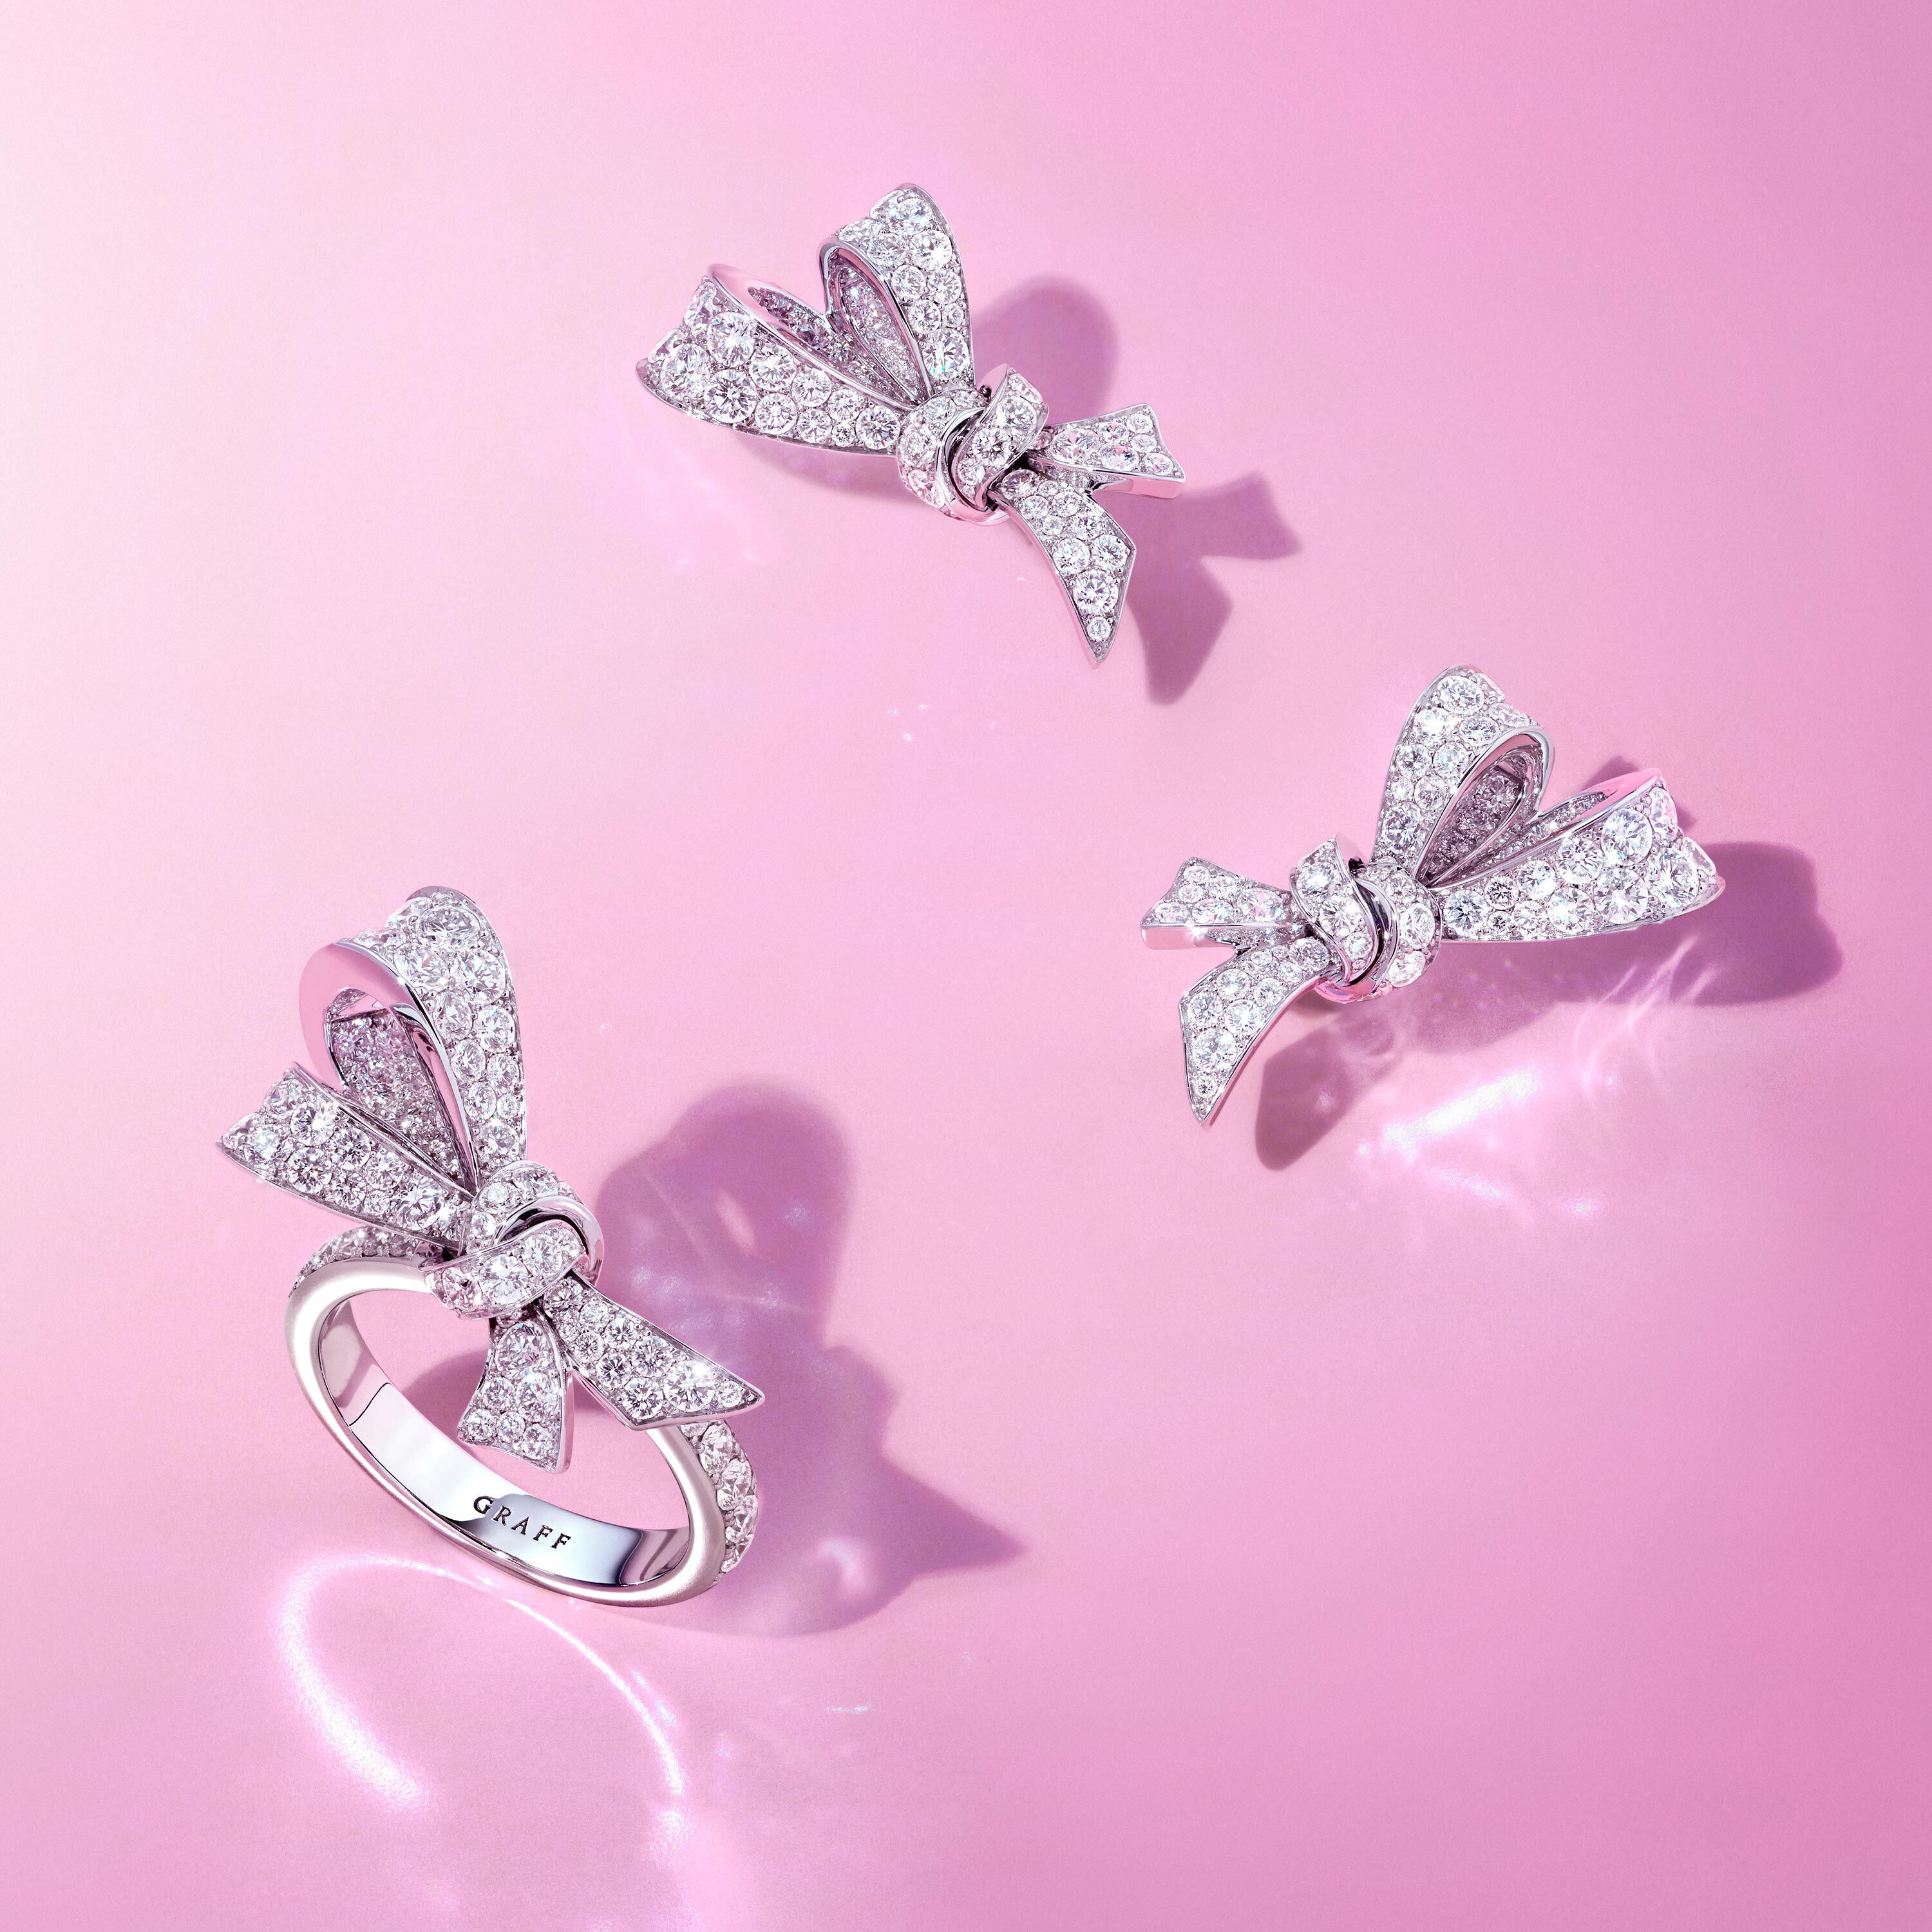 Graff Tilda's Bow diamond earrings and rings on a pink background